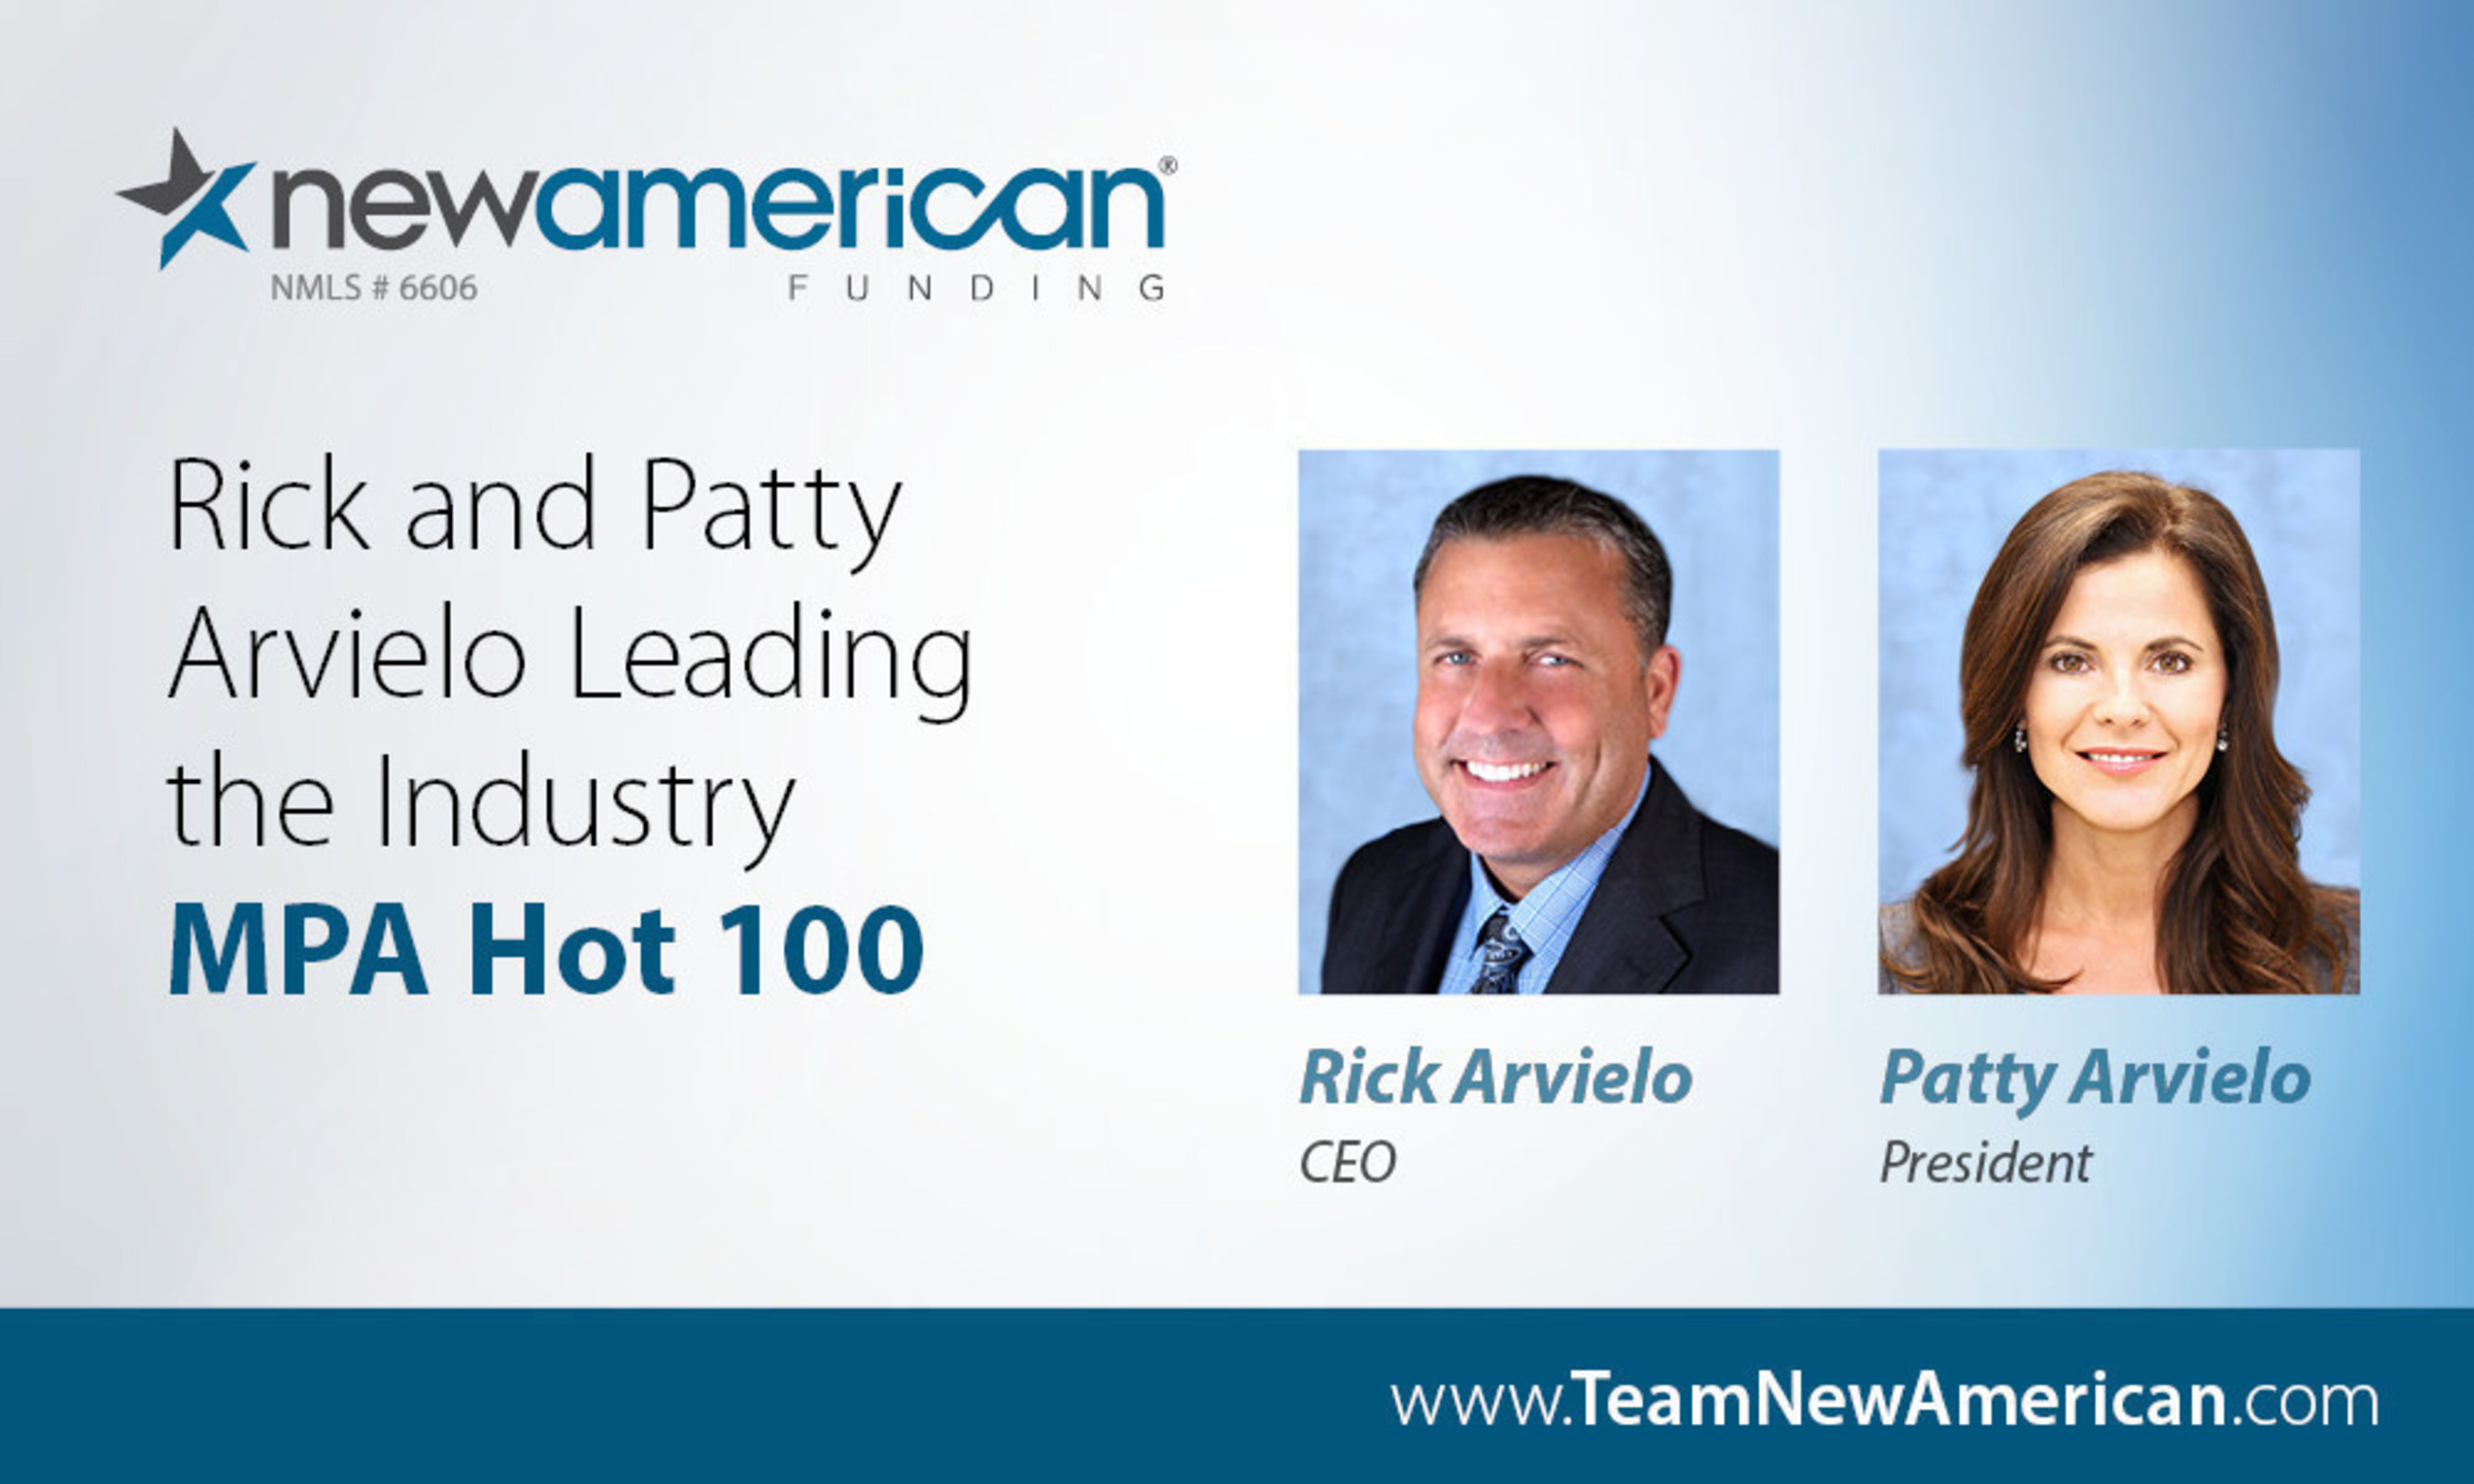 MPA's Hot 100 Recognizes Industry Innovation, Names Rick and Patty Arvielo